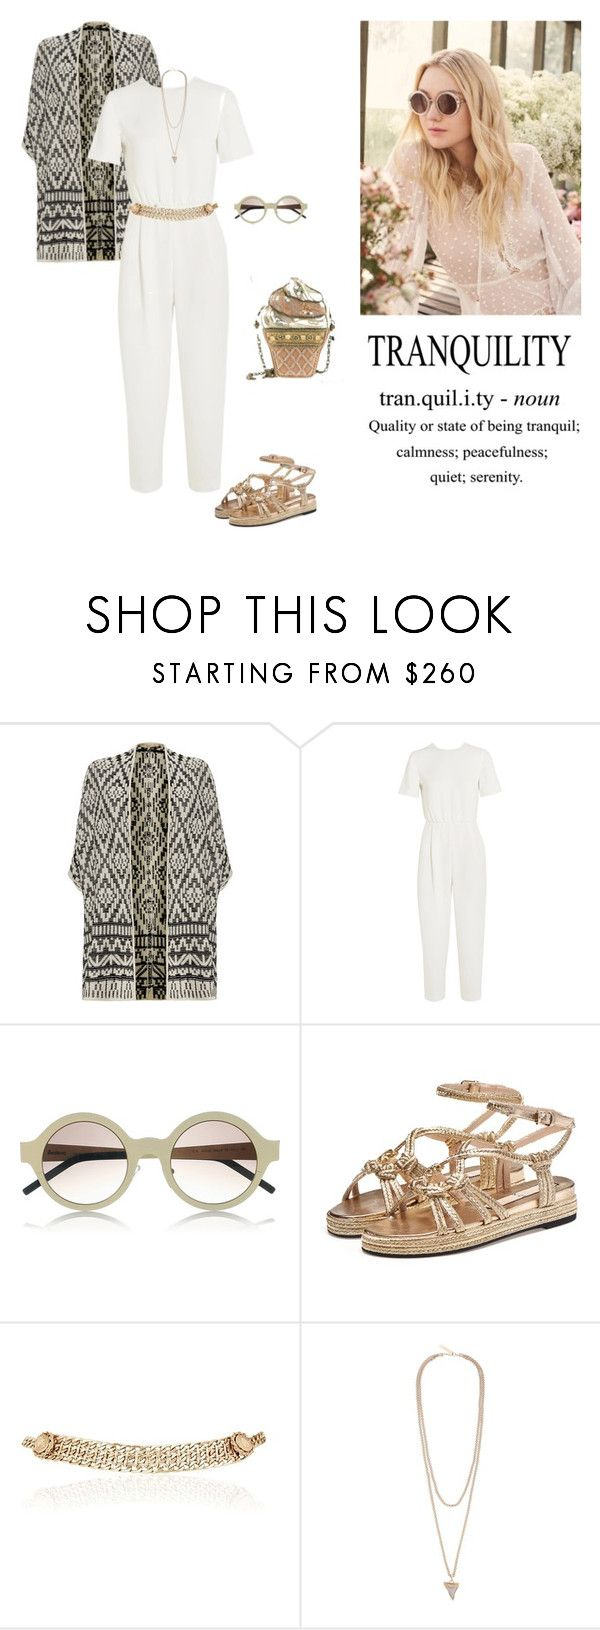 """""""Tranquility"""" by dorey on Polyvore featuring Mary Frances Accessories, Jimmy Choo, Joie, MaxMara, Illesteva, Maison Mayle and Givenchy"""